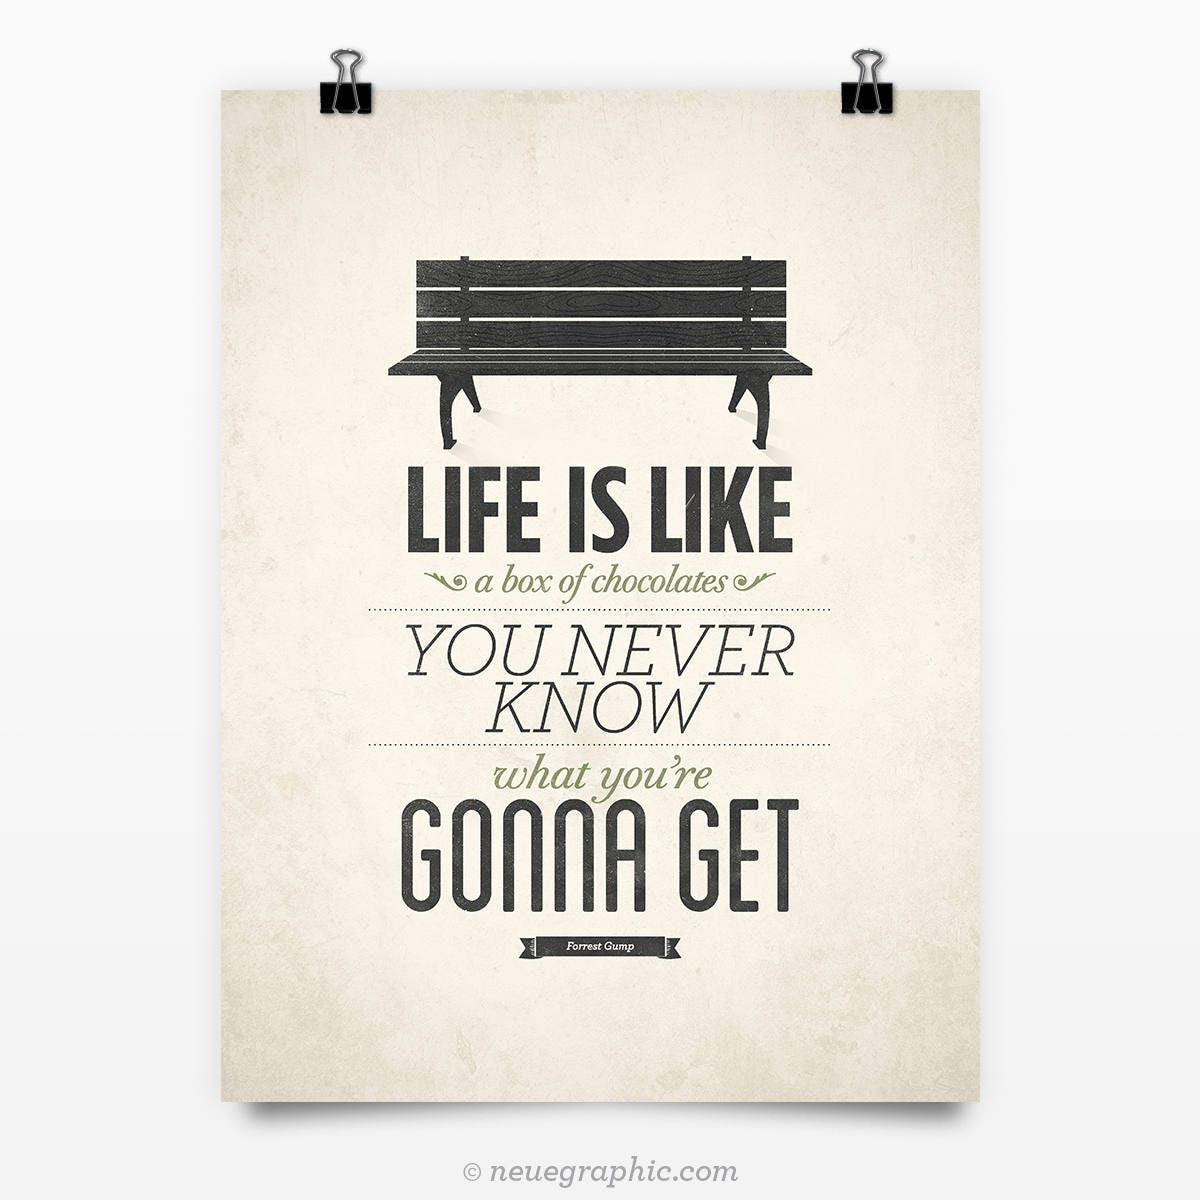 life is like a box of chocolates 'life is like a box of chocolates – you never know what you're going to get' in the face of this 'life is random' attitude, the wisdom of the world says 'grab what you can, now' the focus becomes self-centred, self-absorbed.